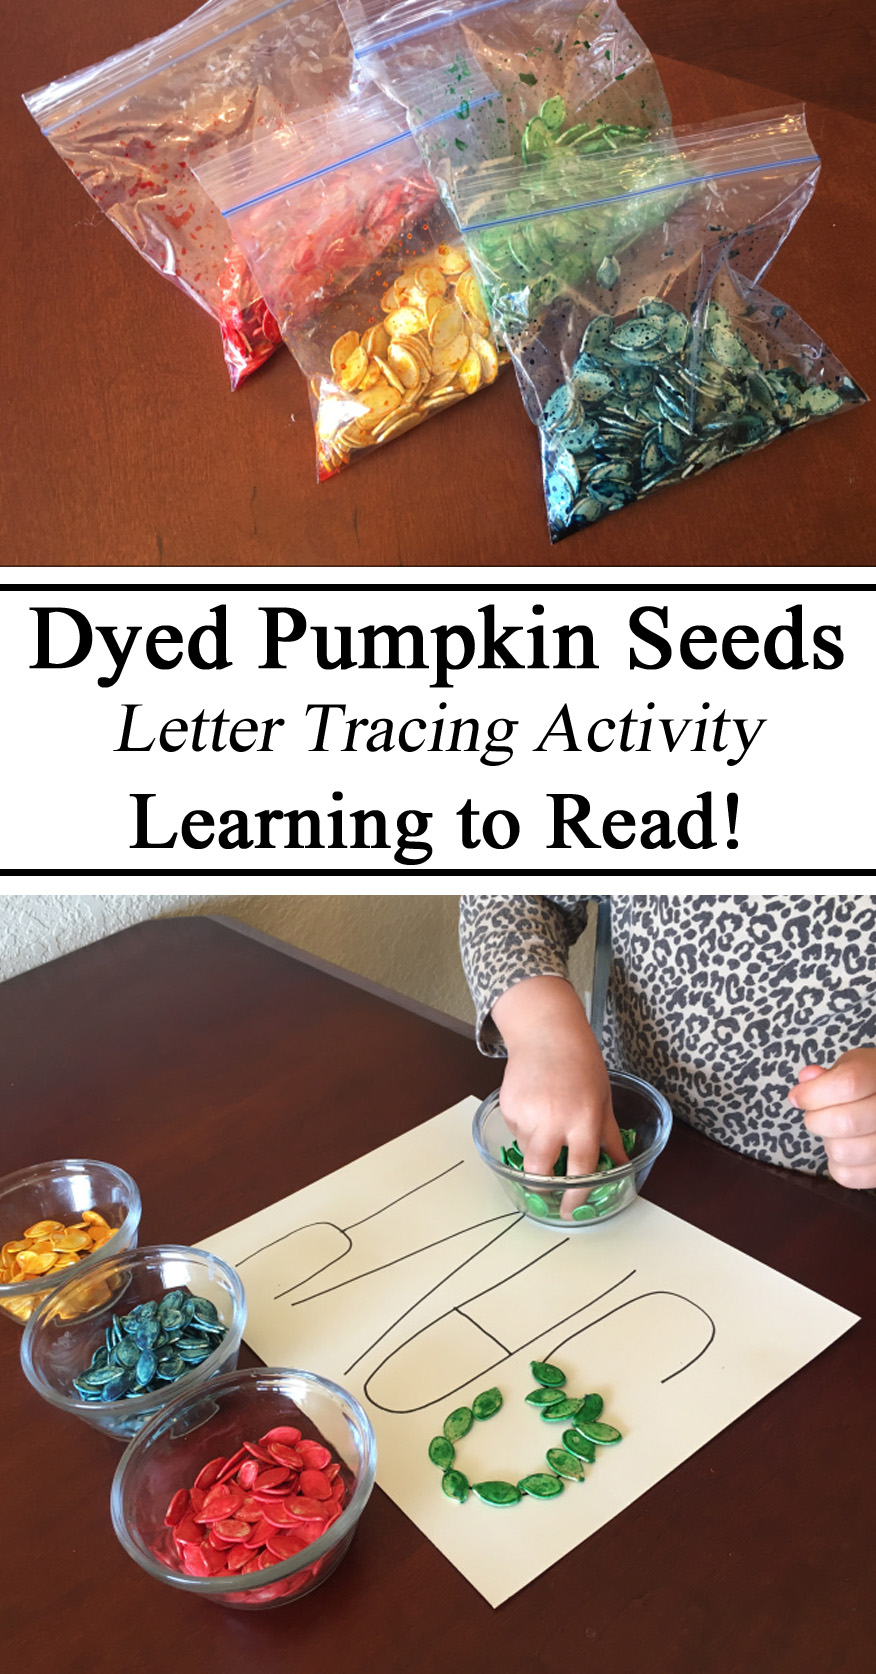 Outline, Learning to Read, Spelling, Spell, Name, Preschool, Tracing Activity, Kindergarten, Homeschool, Homeschooling, Hands on Learning, Montessori, Educational, DIY, Dyed Seeds, Pumpking, Fall, Autumn, Unit, Alphabet